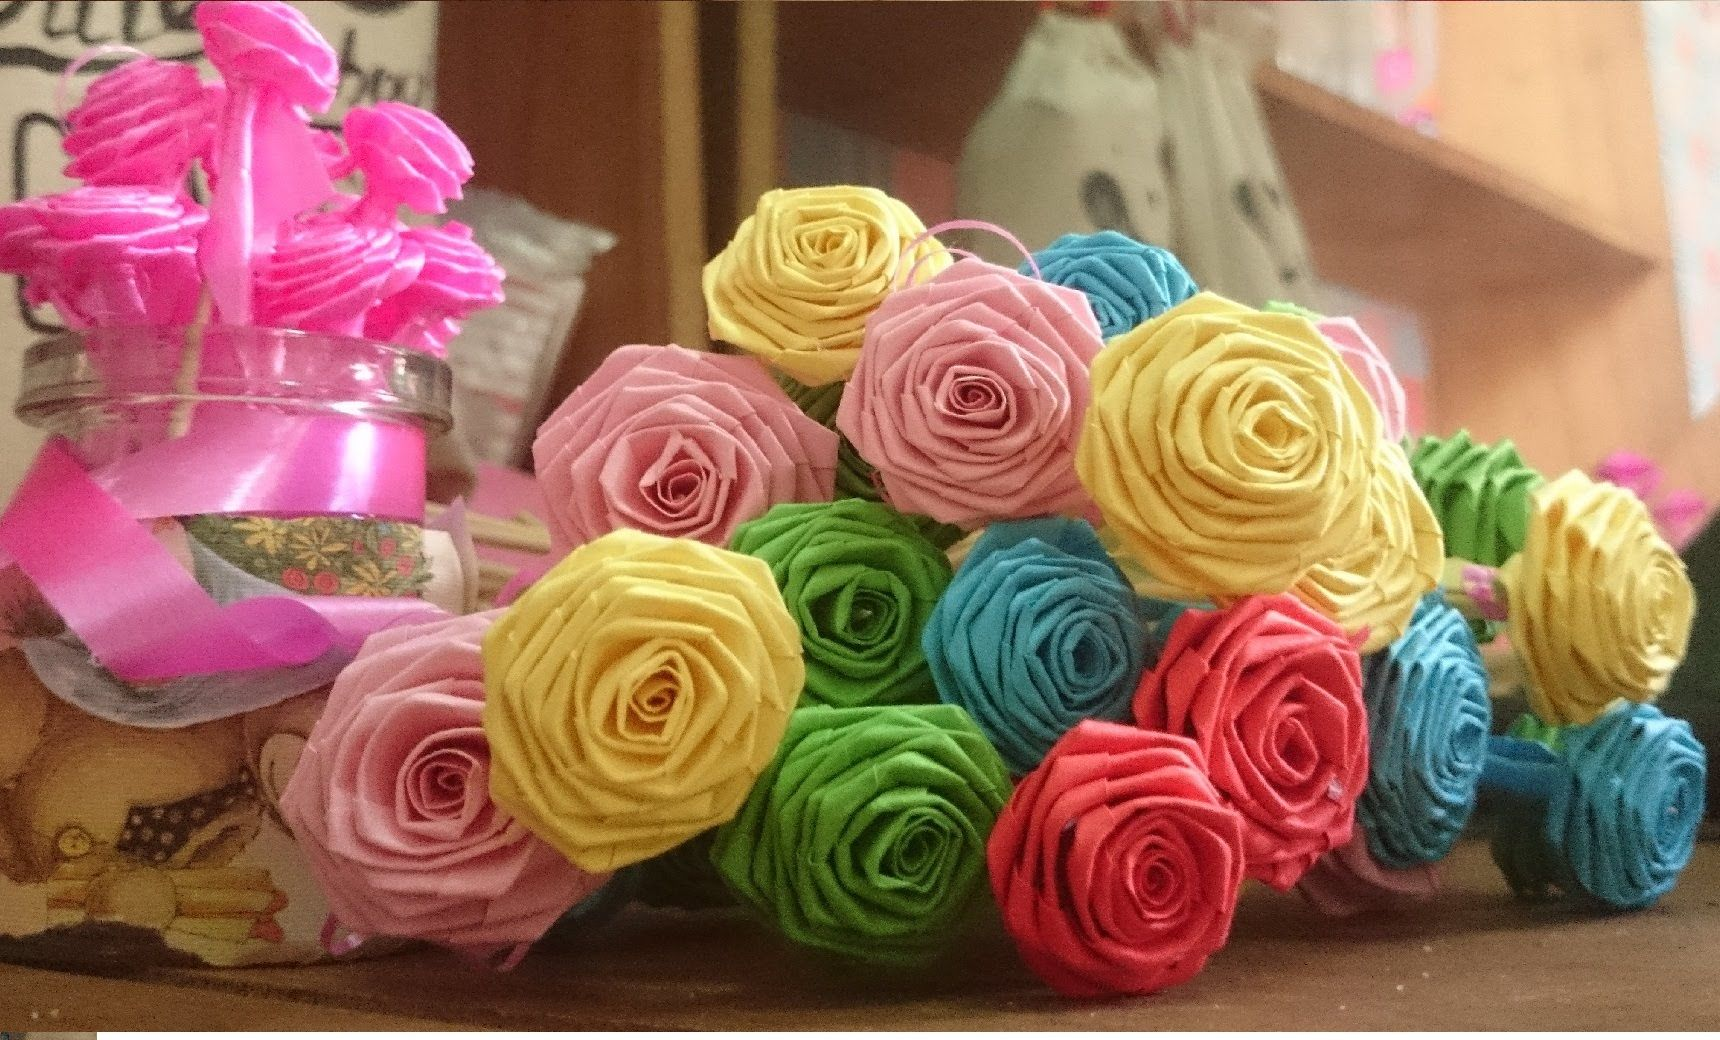 How to make handmade paper flower super easy way to make a real how to make handmade paper flower super easy way to make a real rose from paper mightylinksfo